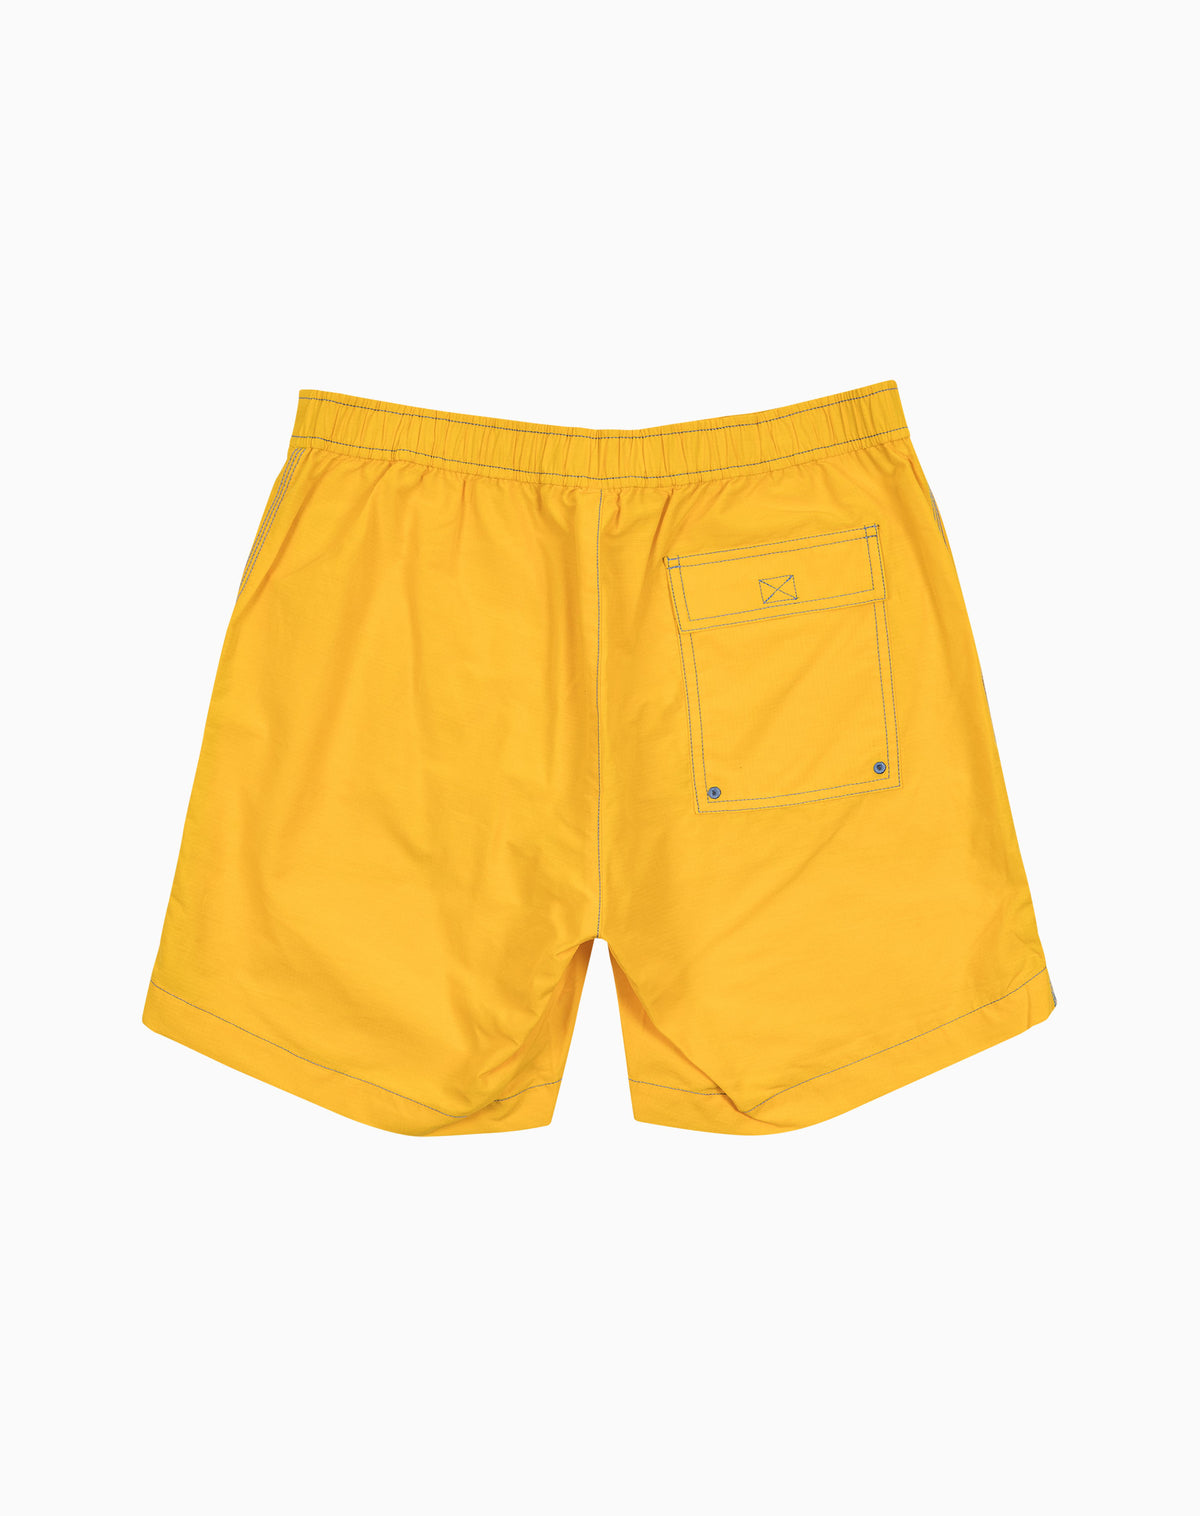 Standard Utility Trunk in Yellow